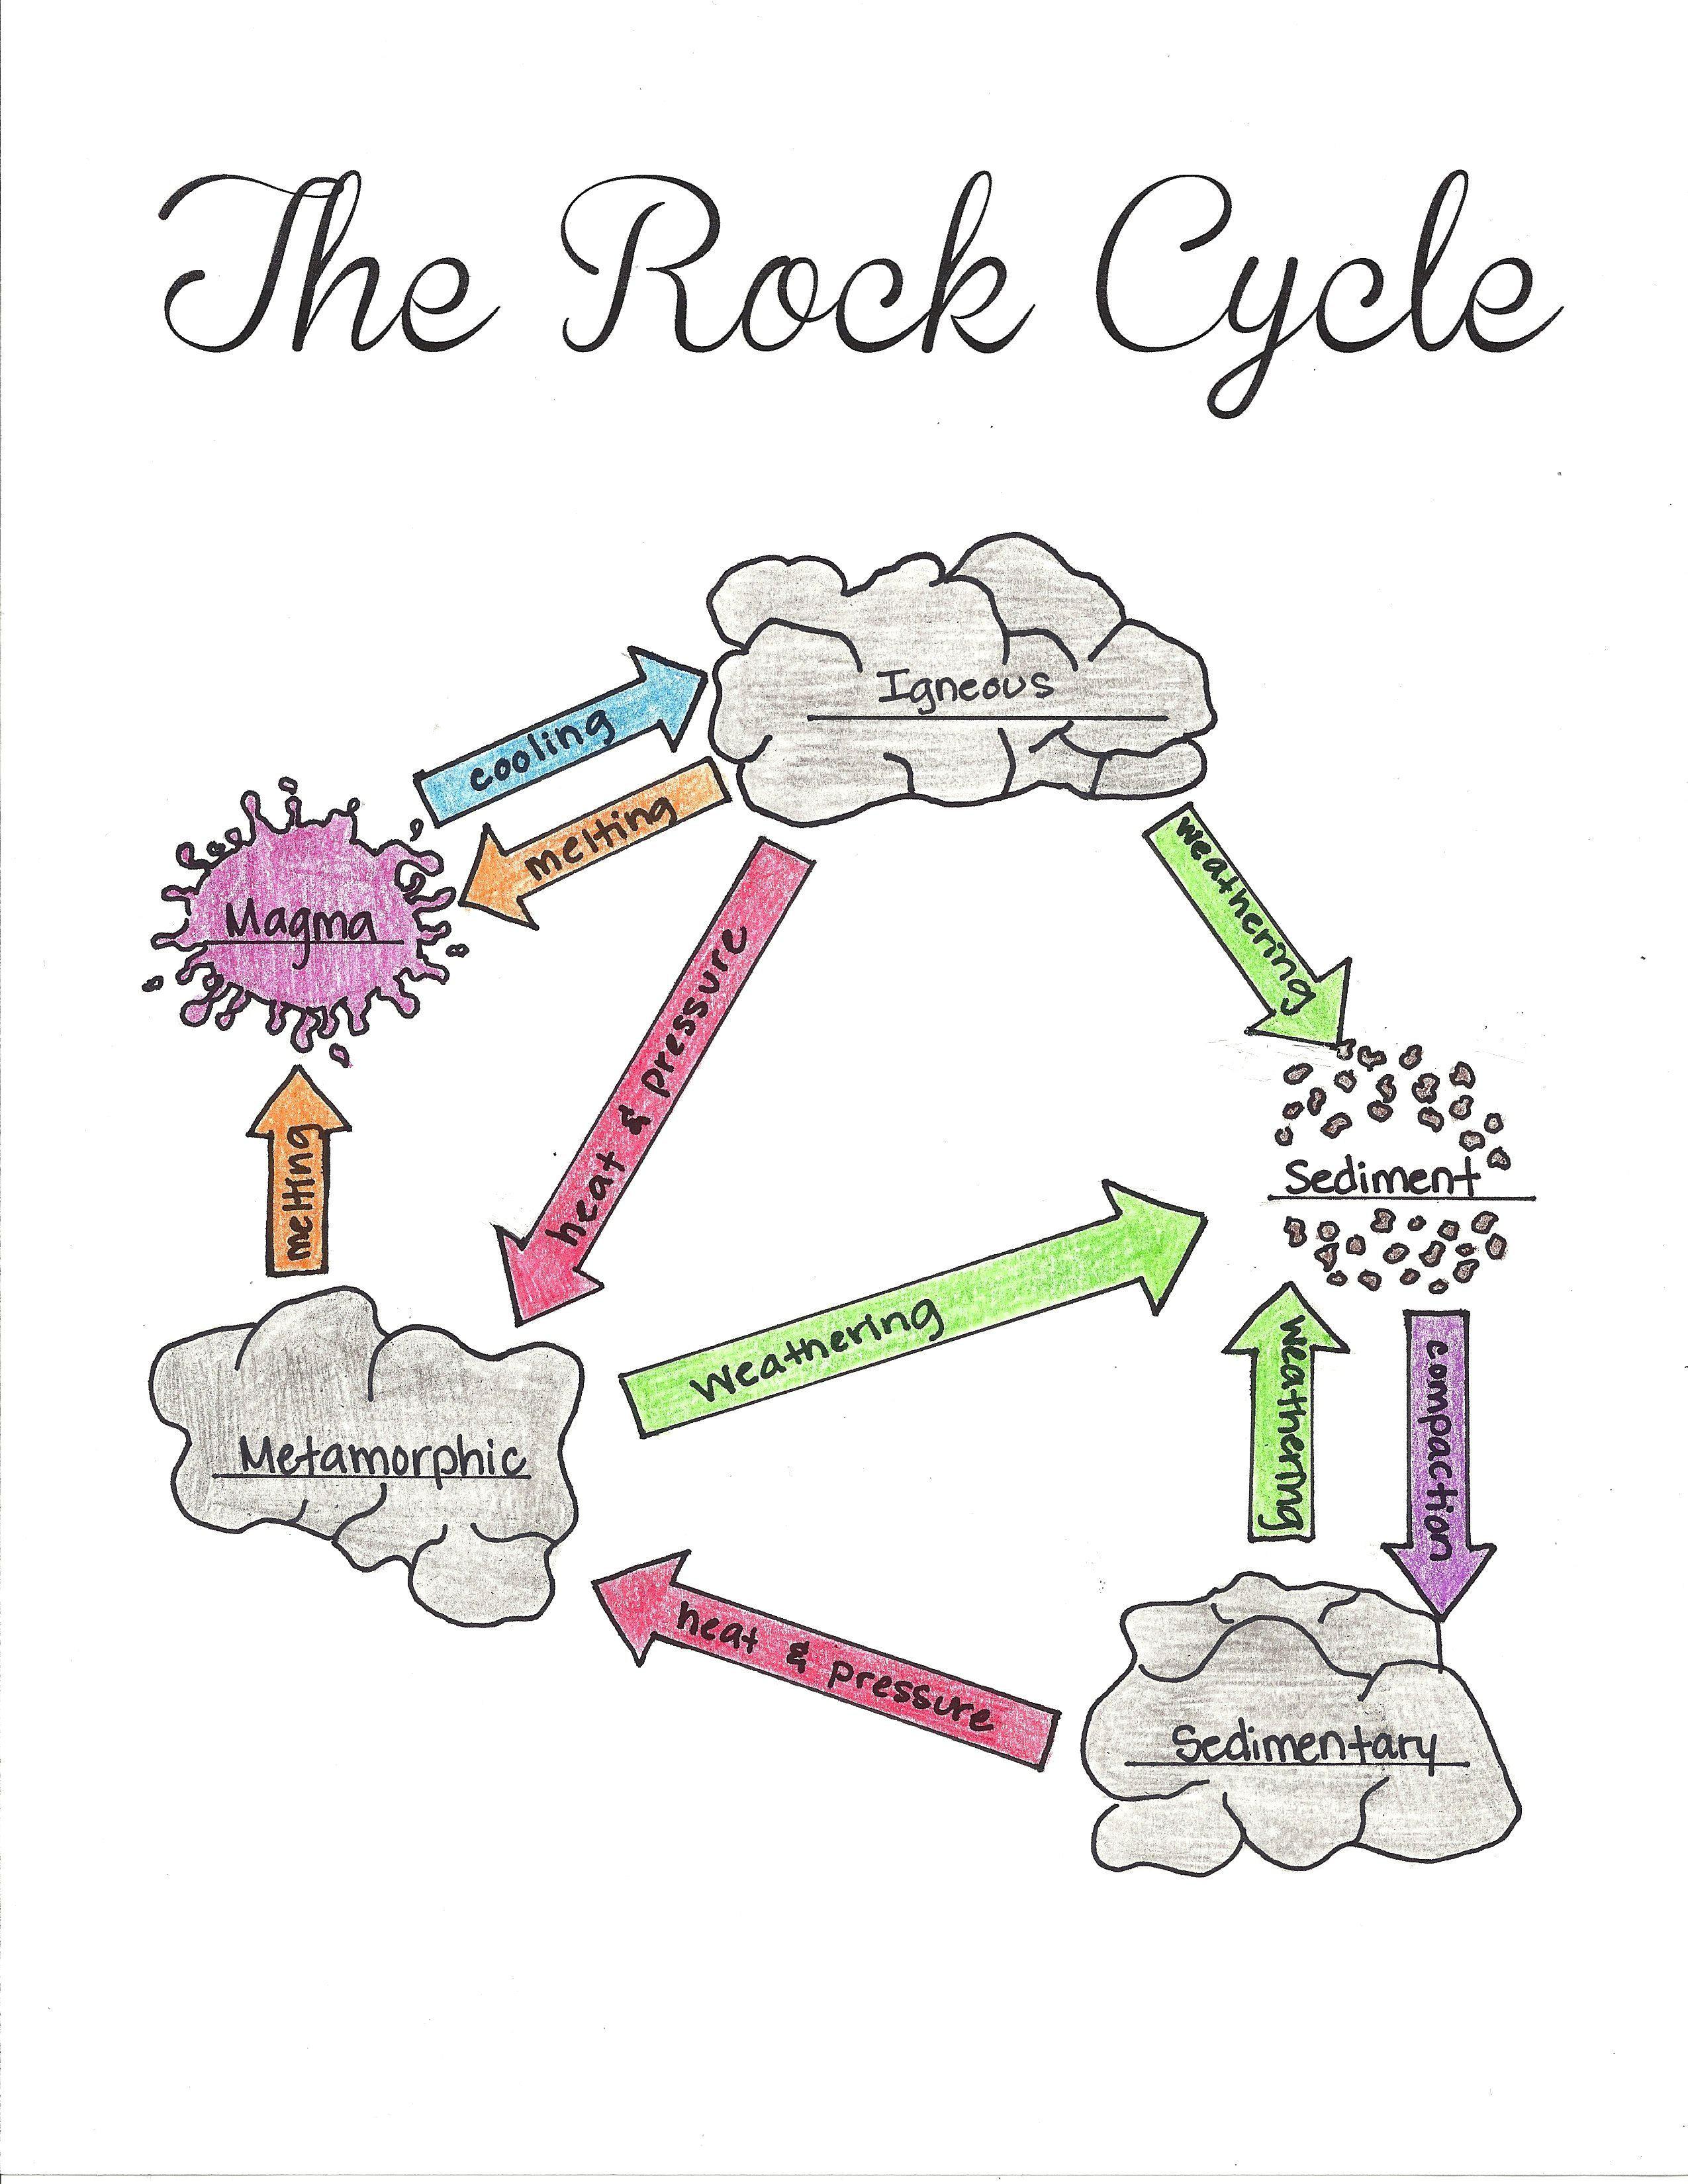 Yerkabuunu oluturan 3 temel kaya tr vardrbunlarmagmatik removable arrows she can put into place during her presentation the rock cycle completed worksheet ccuart Choice Image